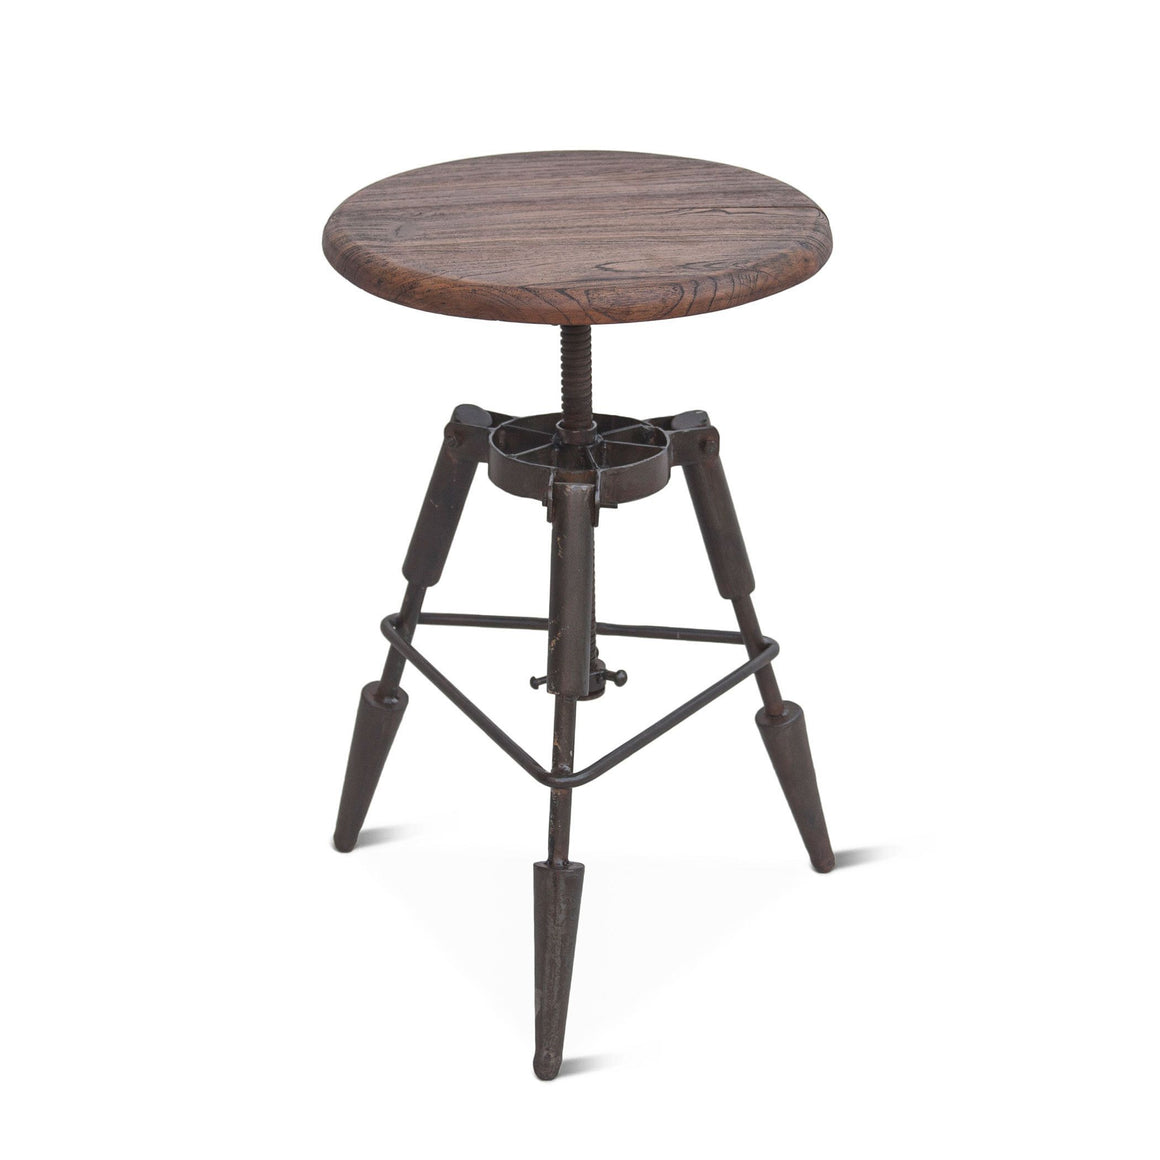 Pair of Steampunk Industrial Adjustable Height Stools Stool - Rustic Deco Incorporated